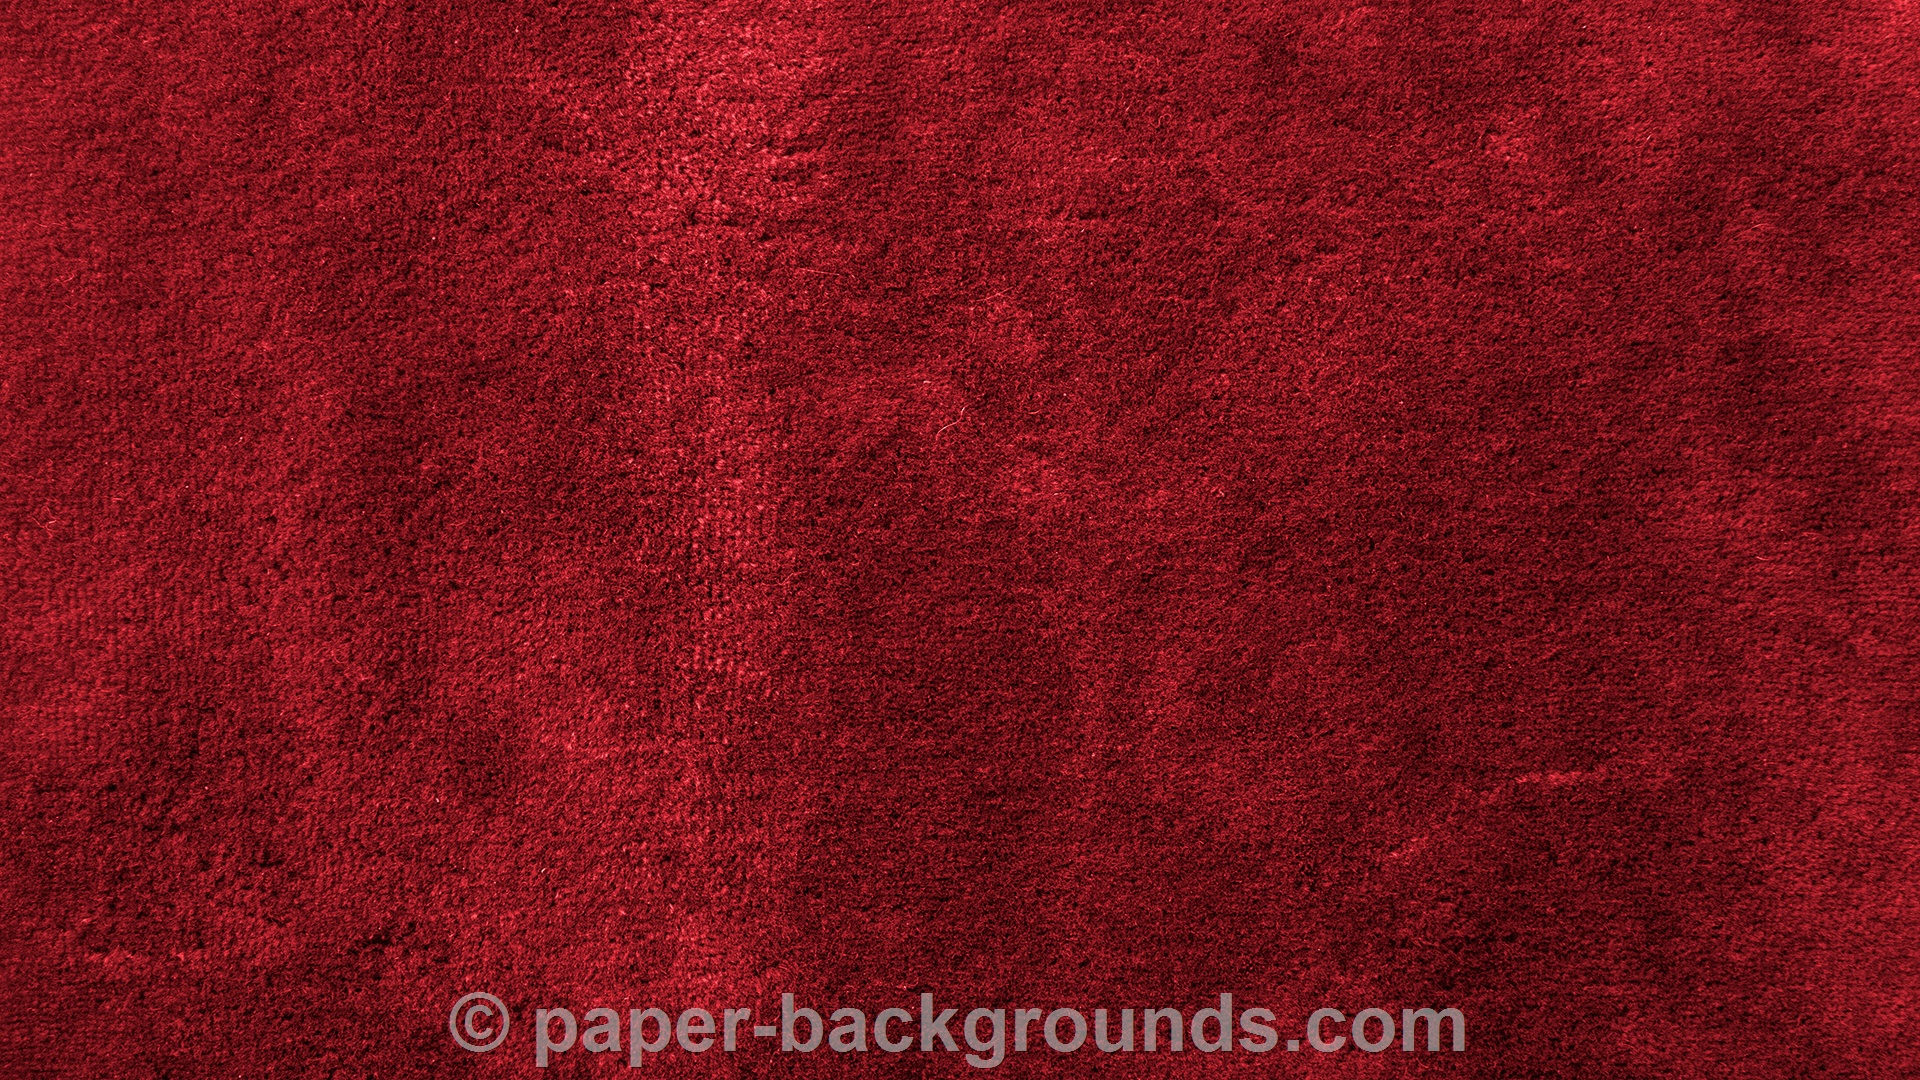 Red velvet texture background hd paper backgrounds Black Background 1920x1080